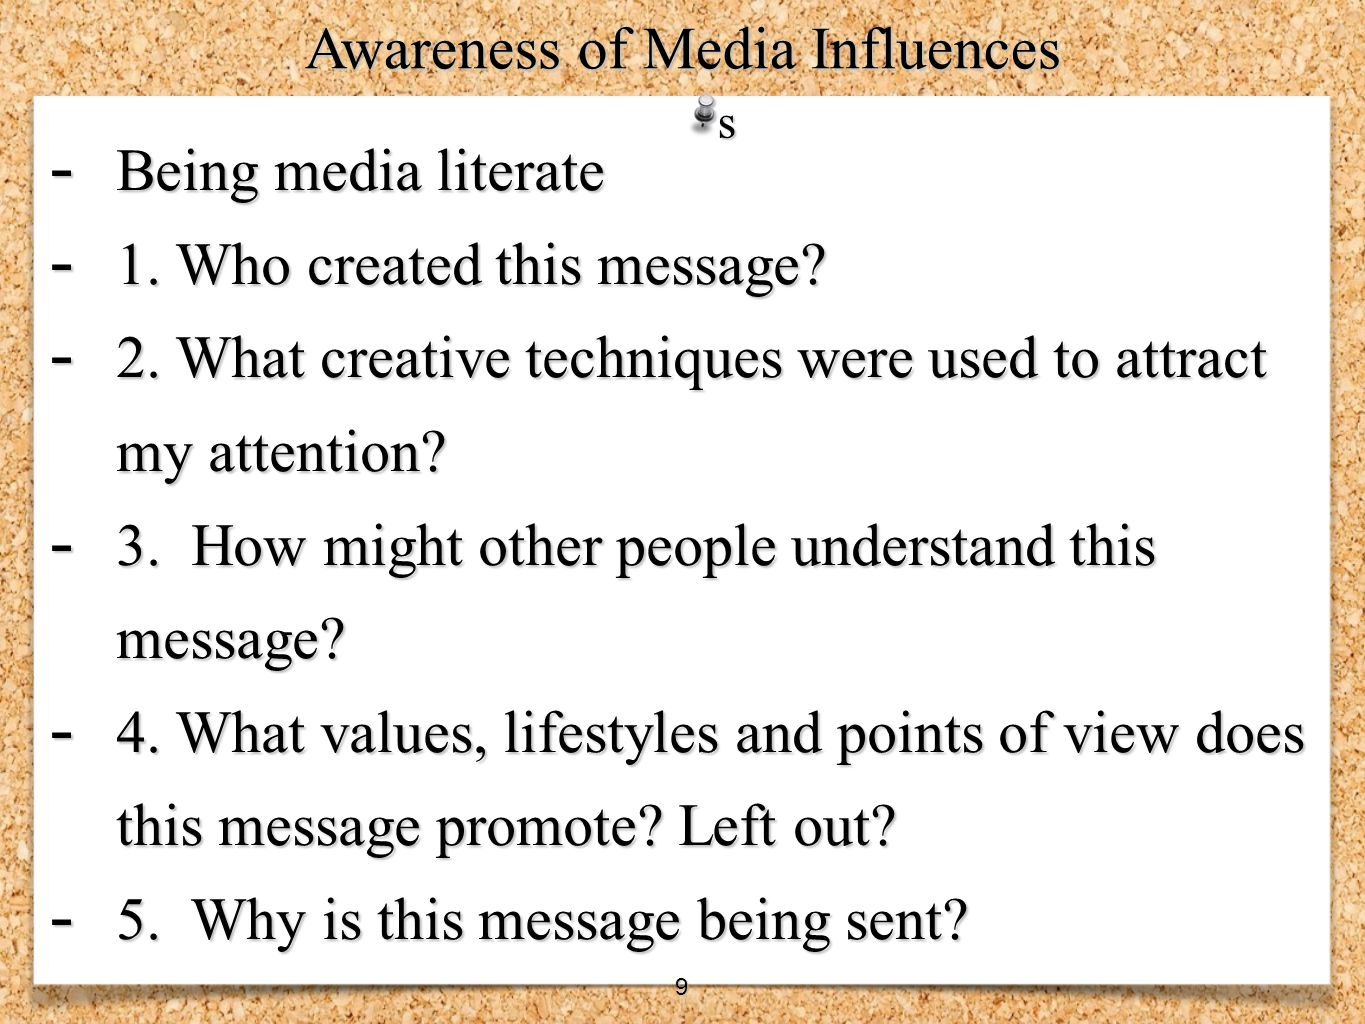 Awareness of Media Influences